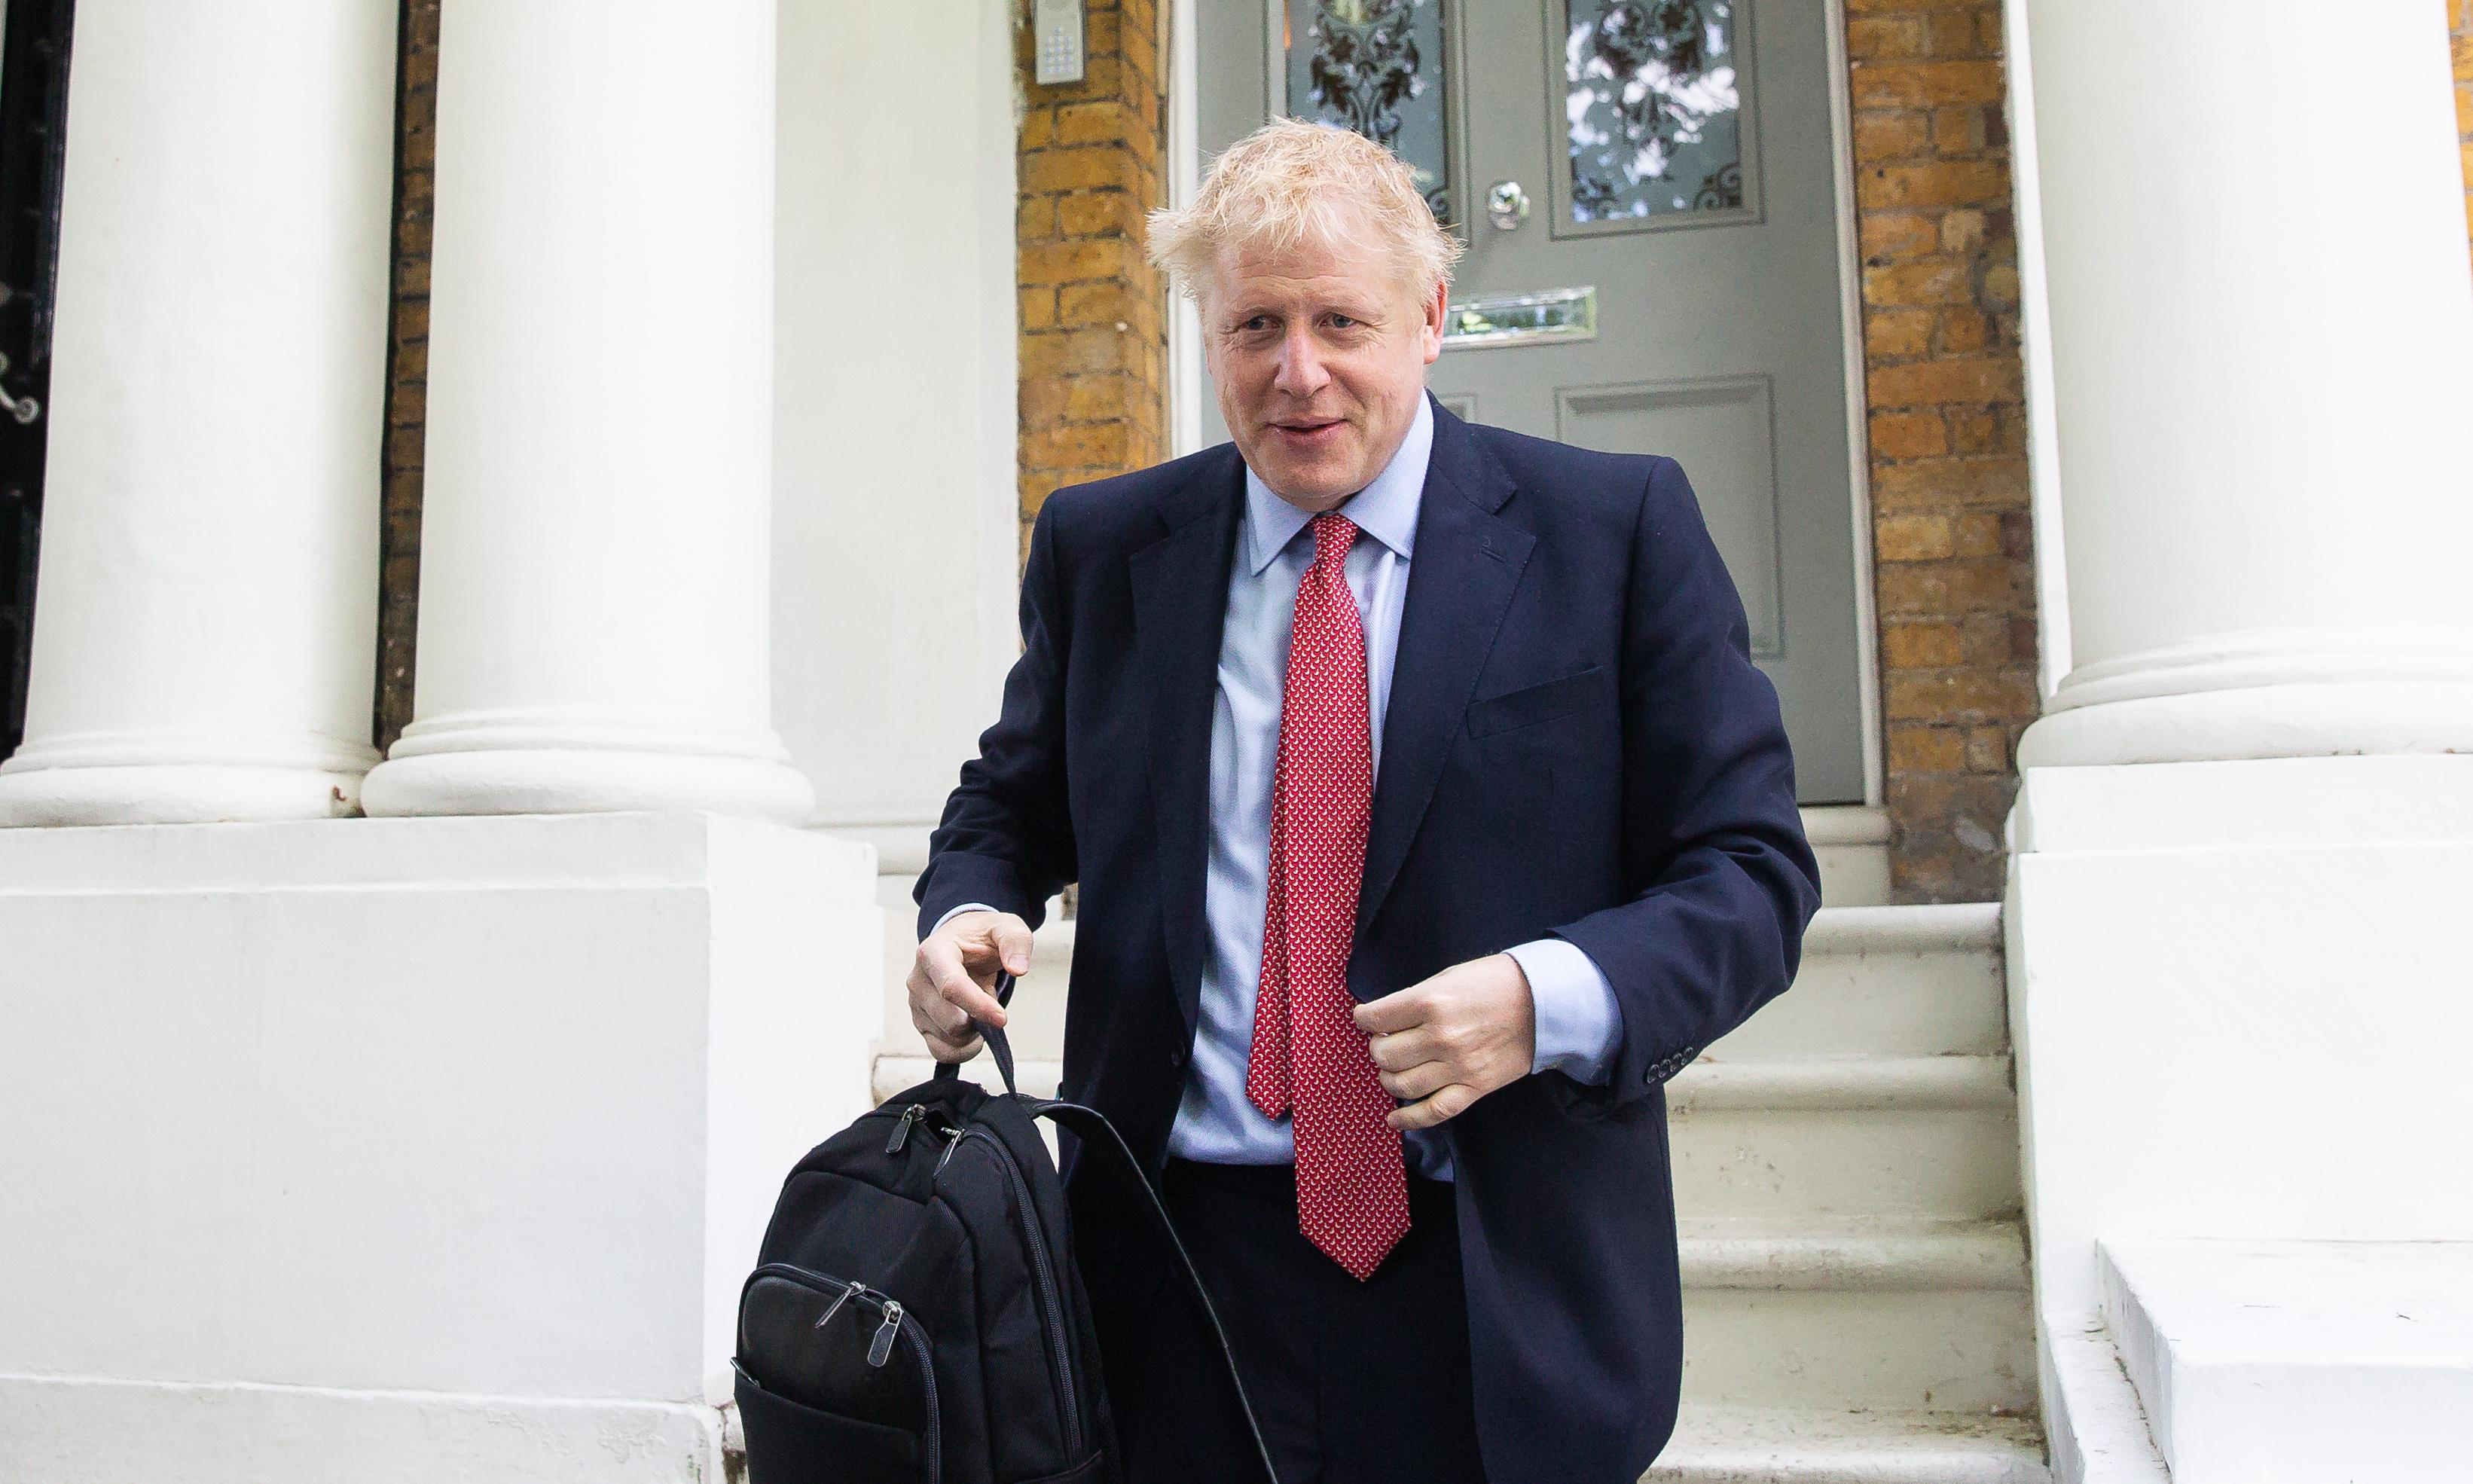 Boris Johnson's neighbour: 'There was no response, so we called the police'